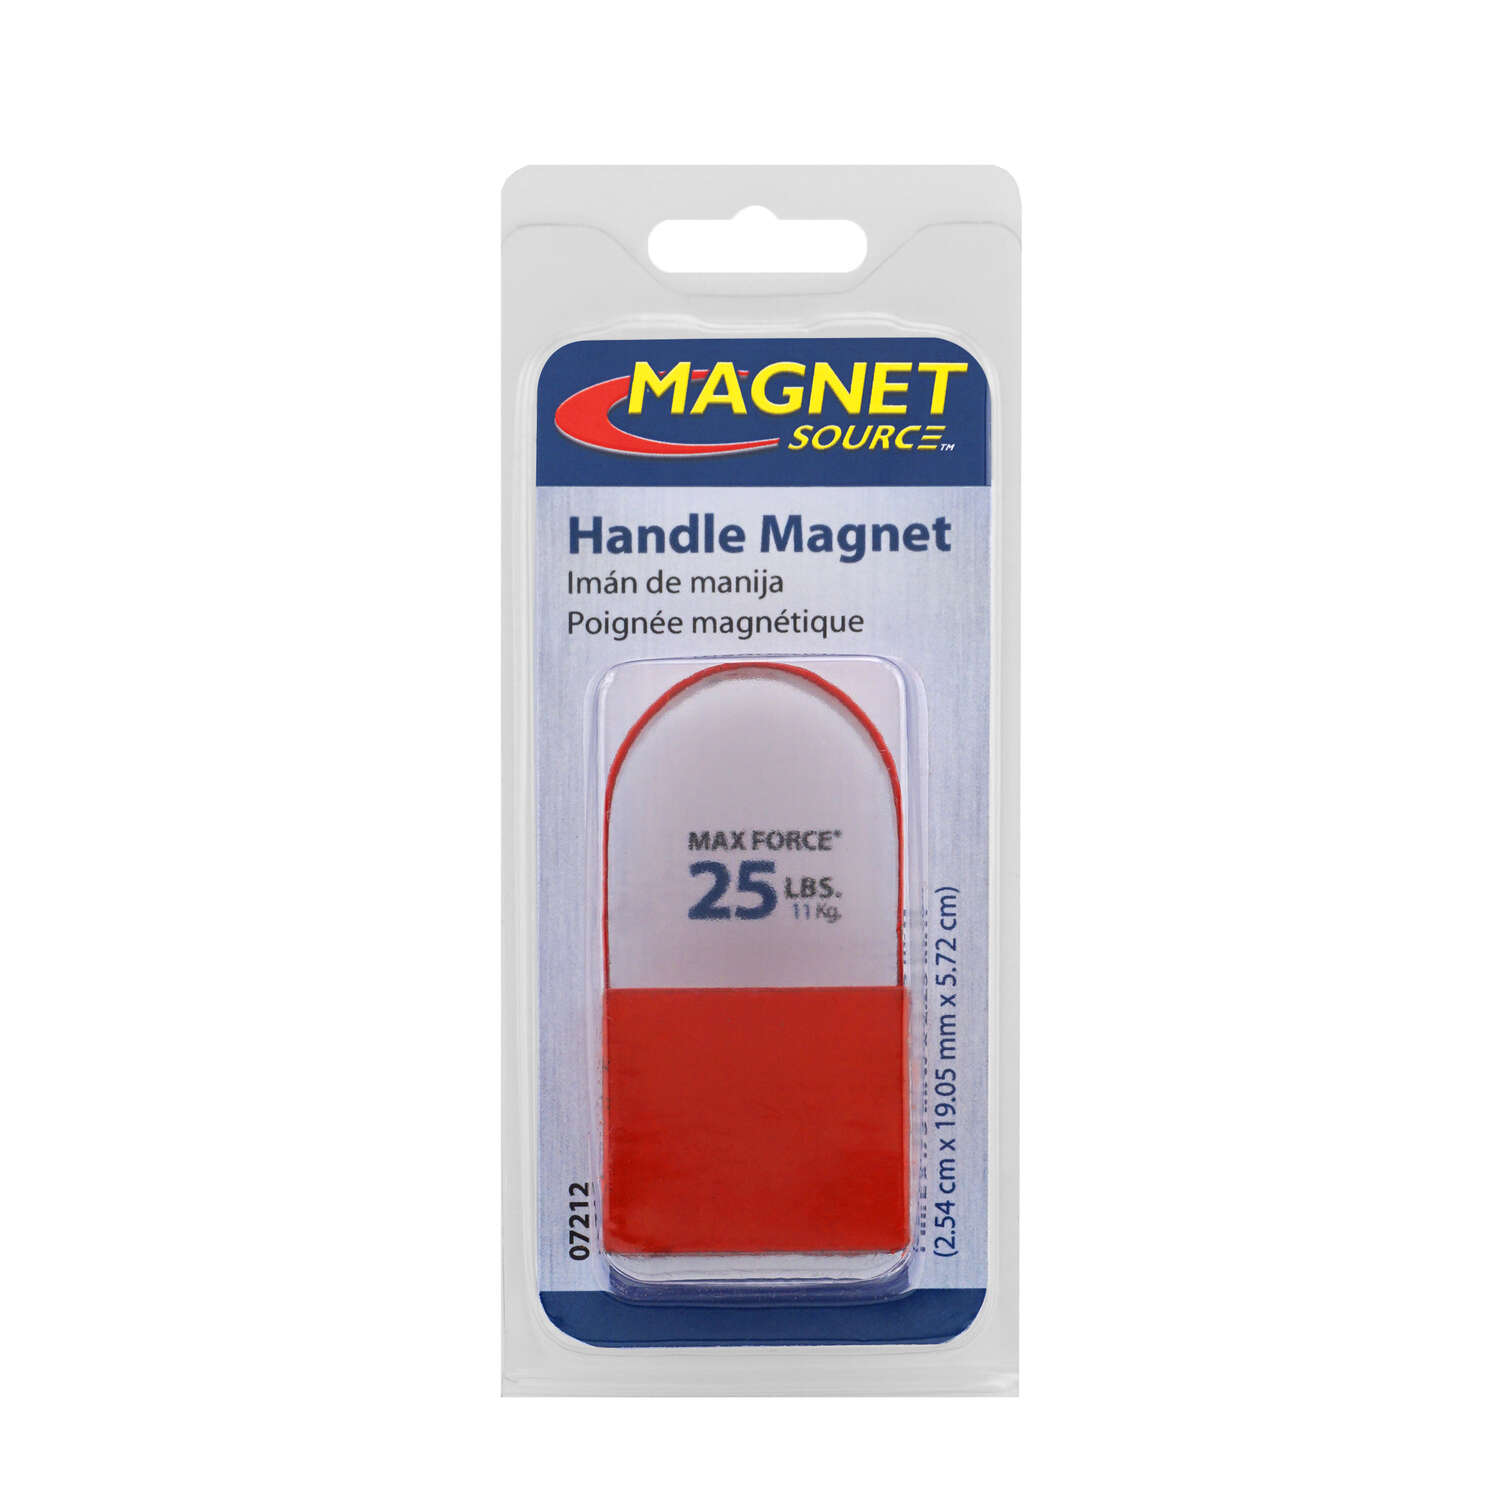 Master Magnetics  The Magnet Source  1 in. Ceramic  Handle  Handle Magnet  25 lb. 3.4 MGOe Red  1 pc